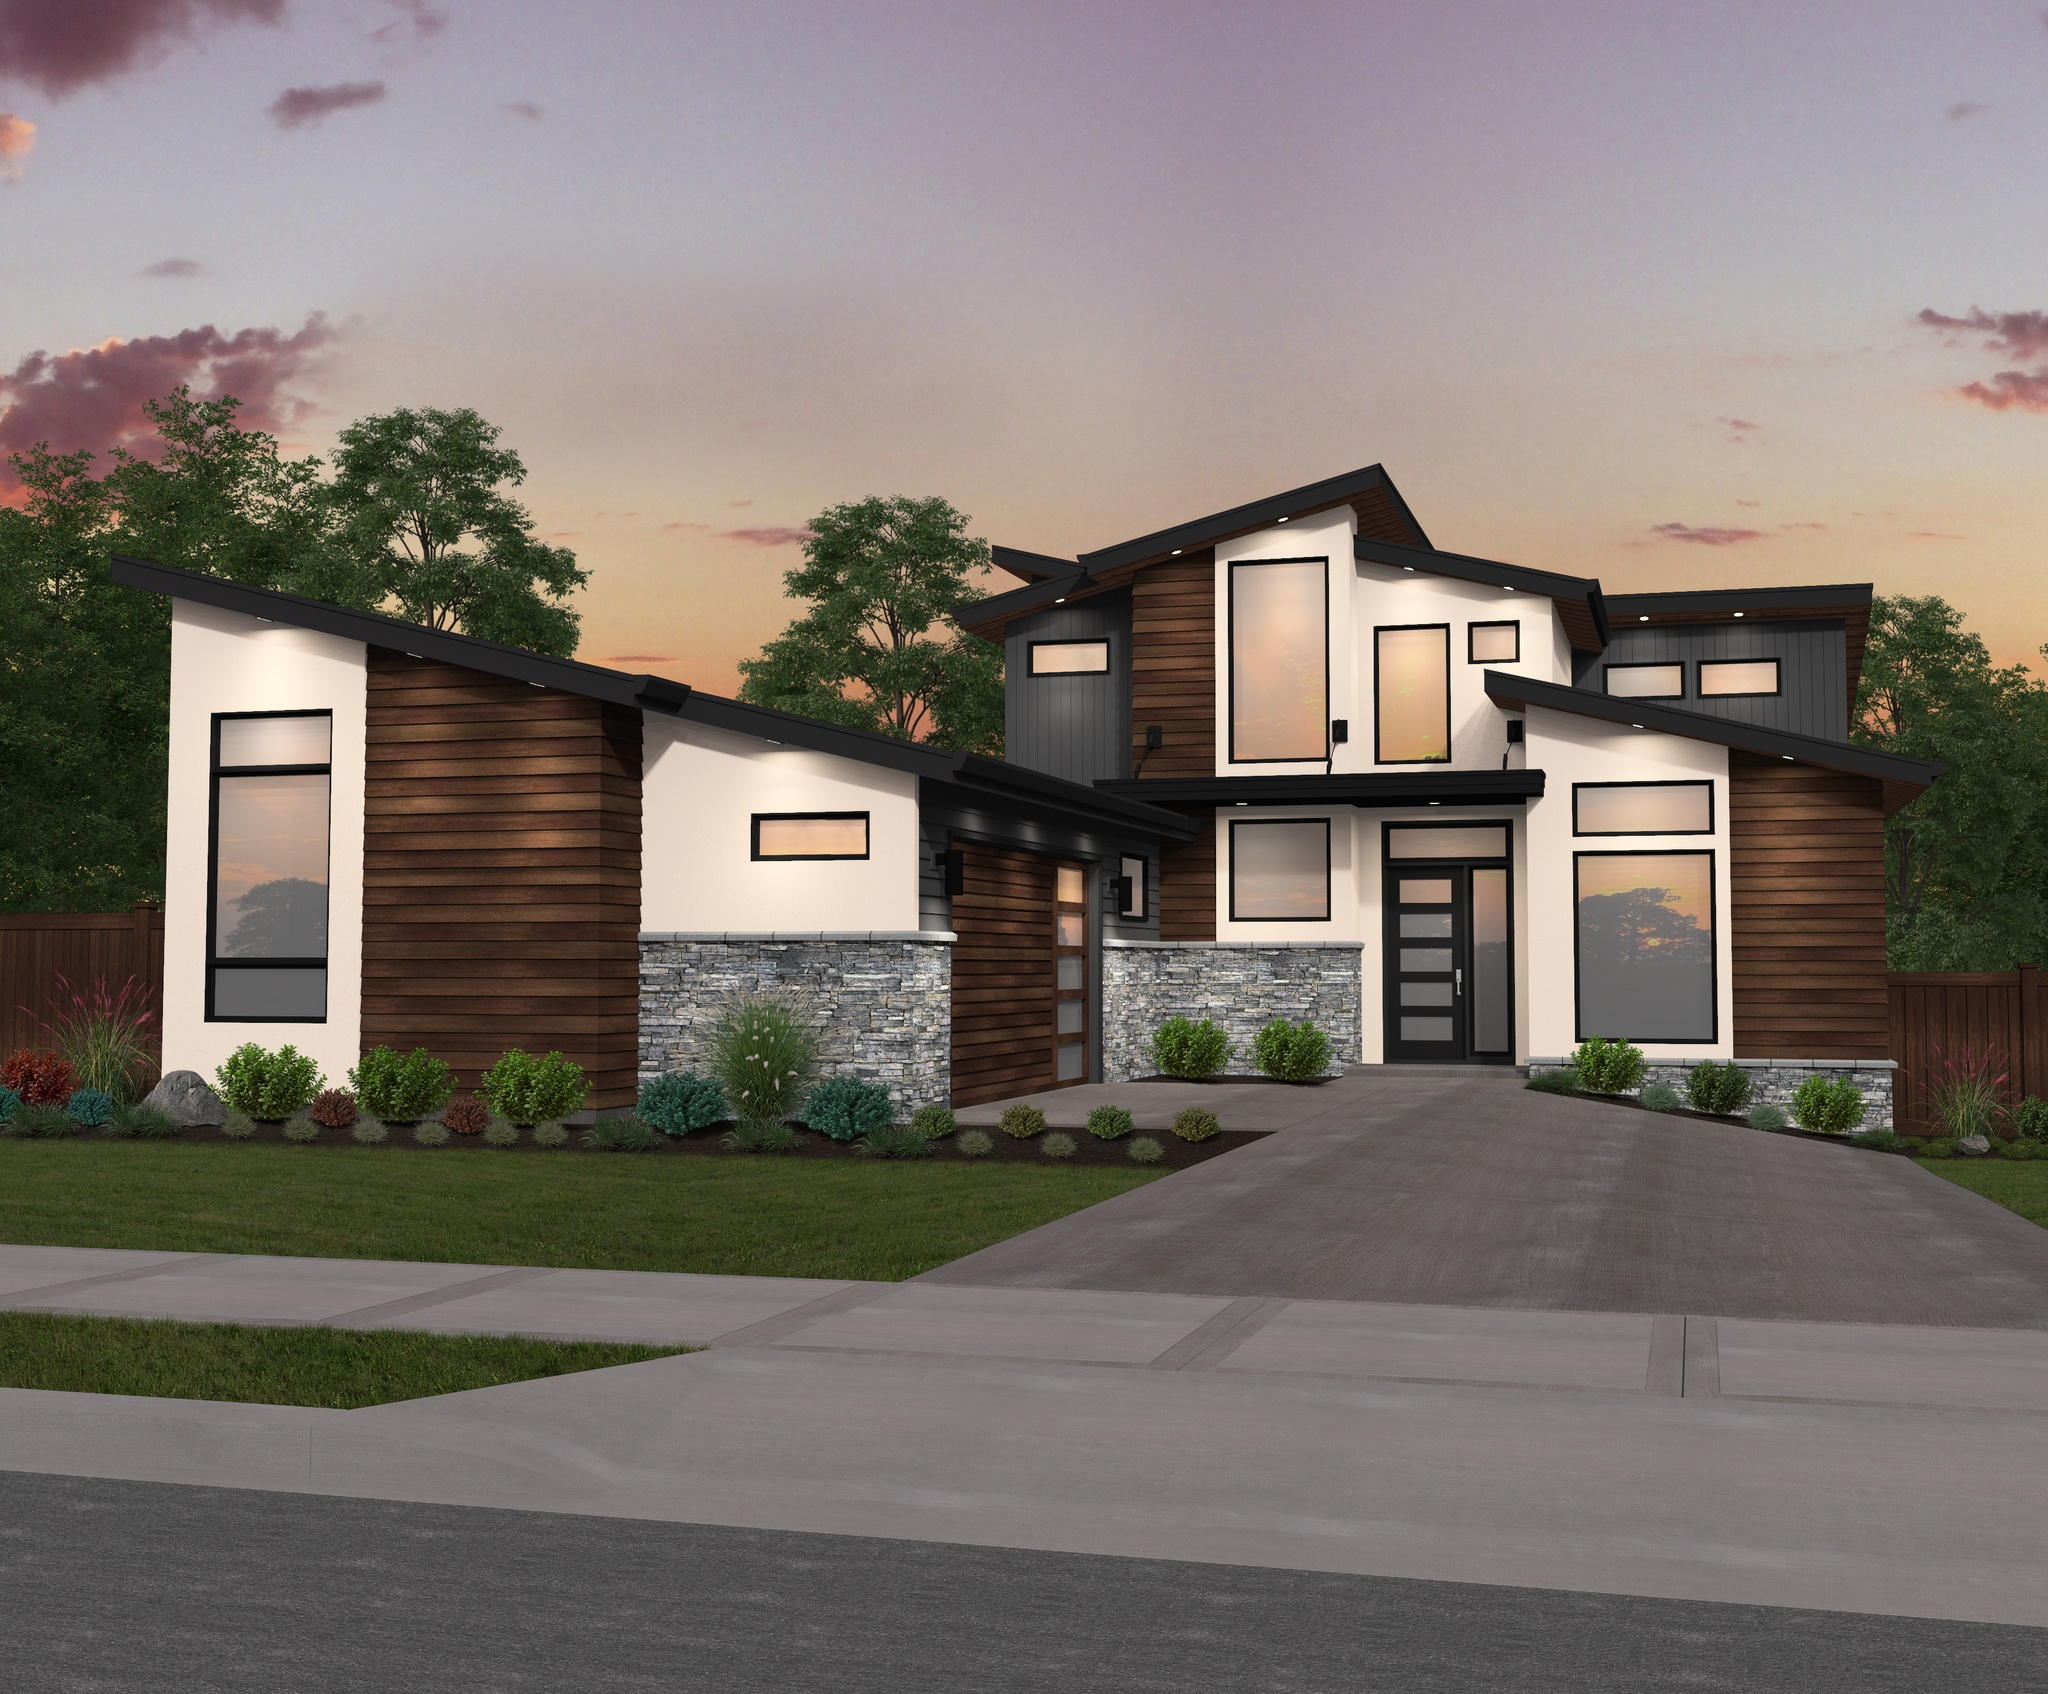 house plans by mark stewart mark stewart home design - Residential Home Designs